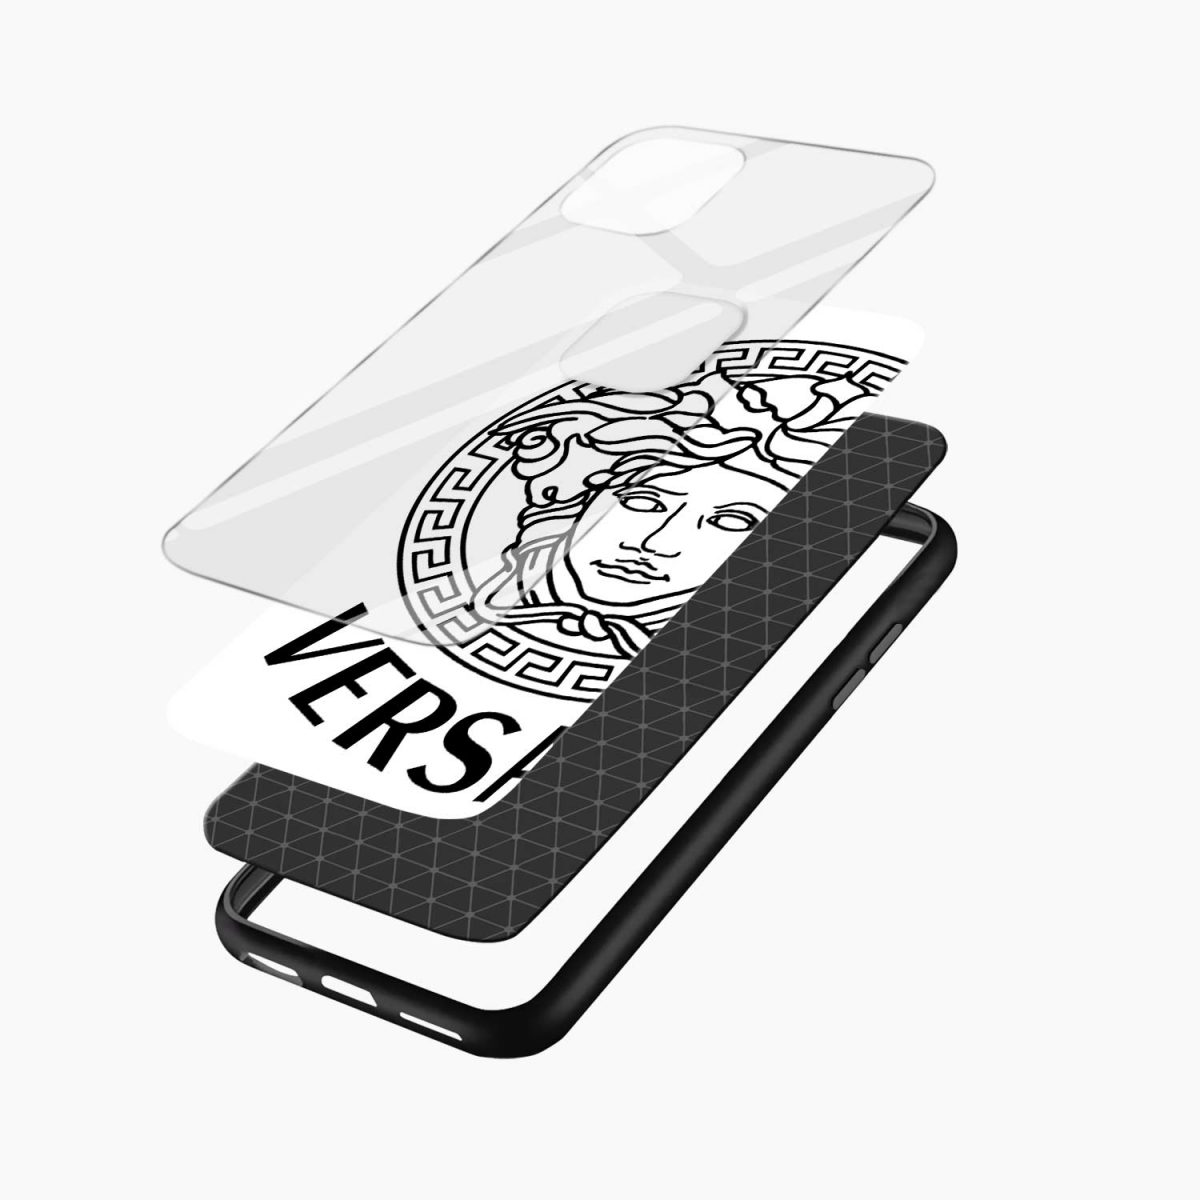 versace black white iphone back cover layers view 1